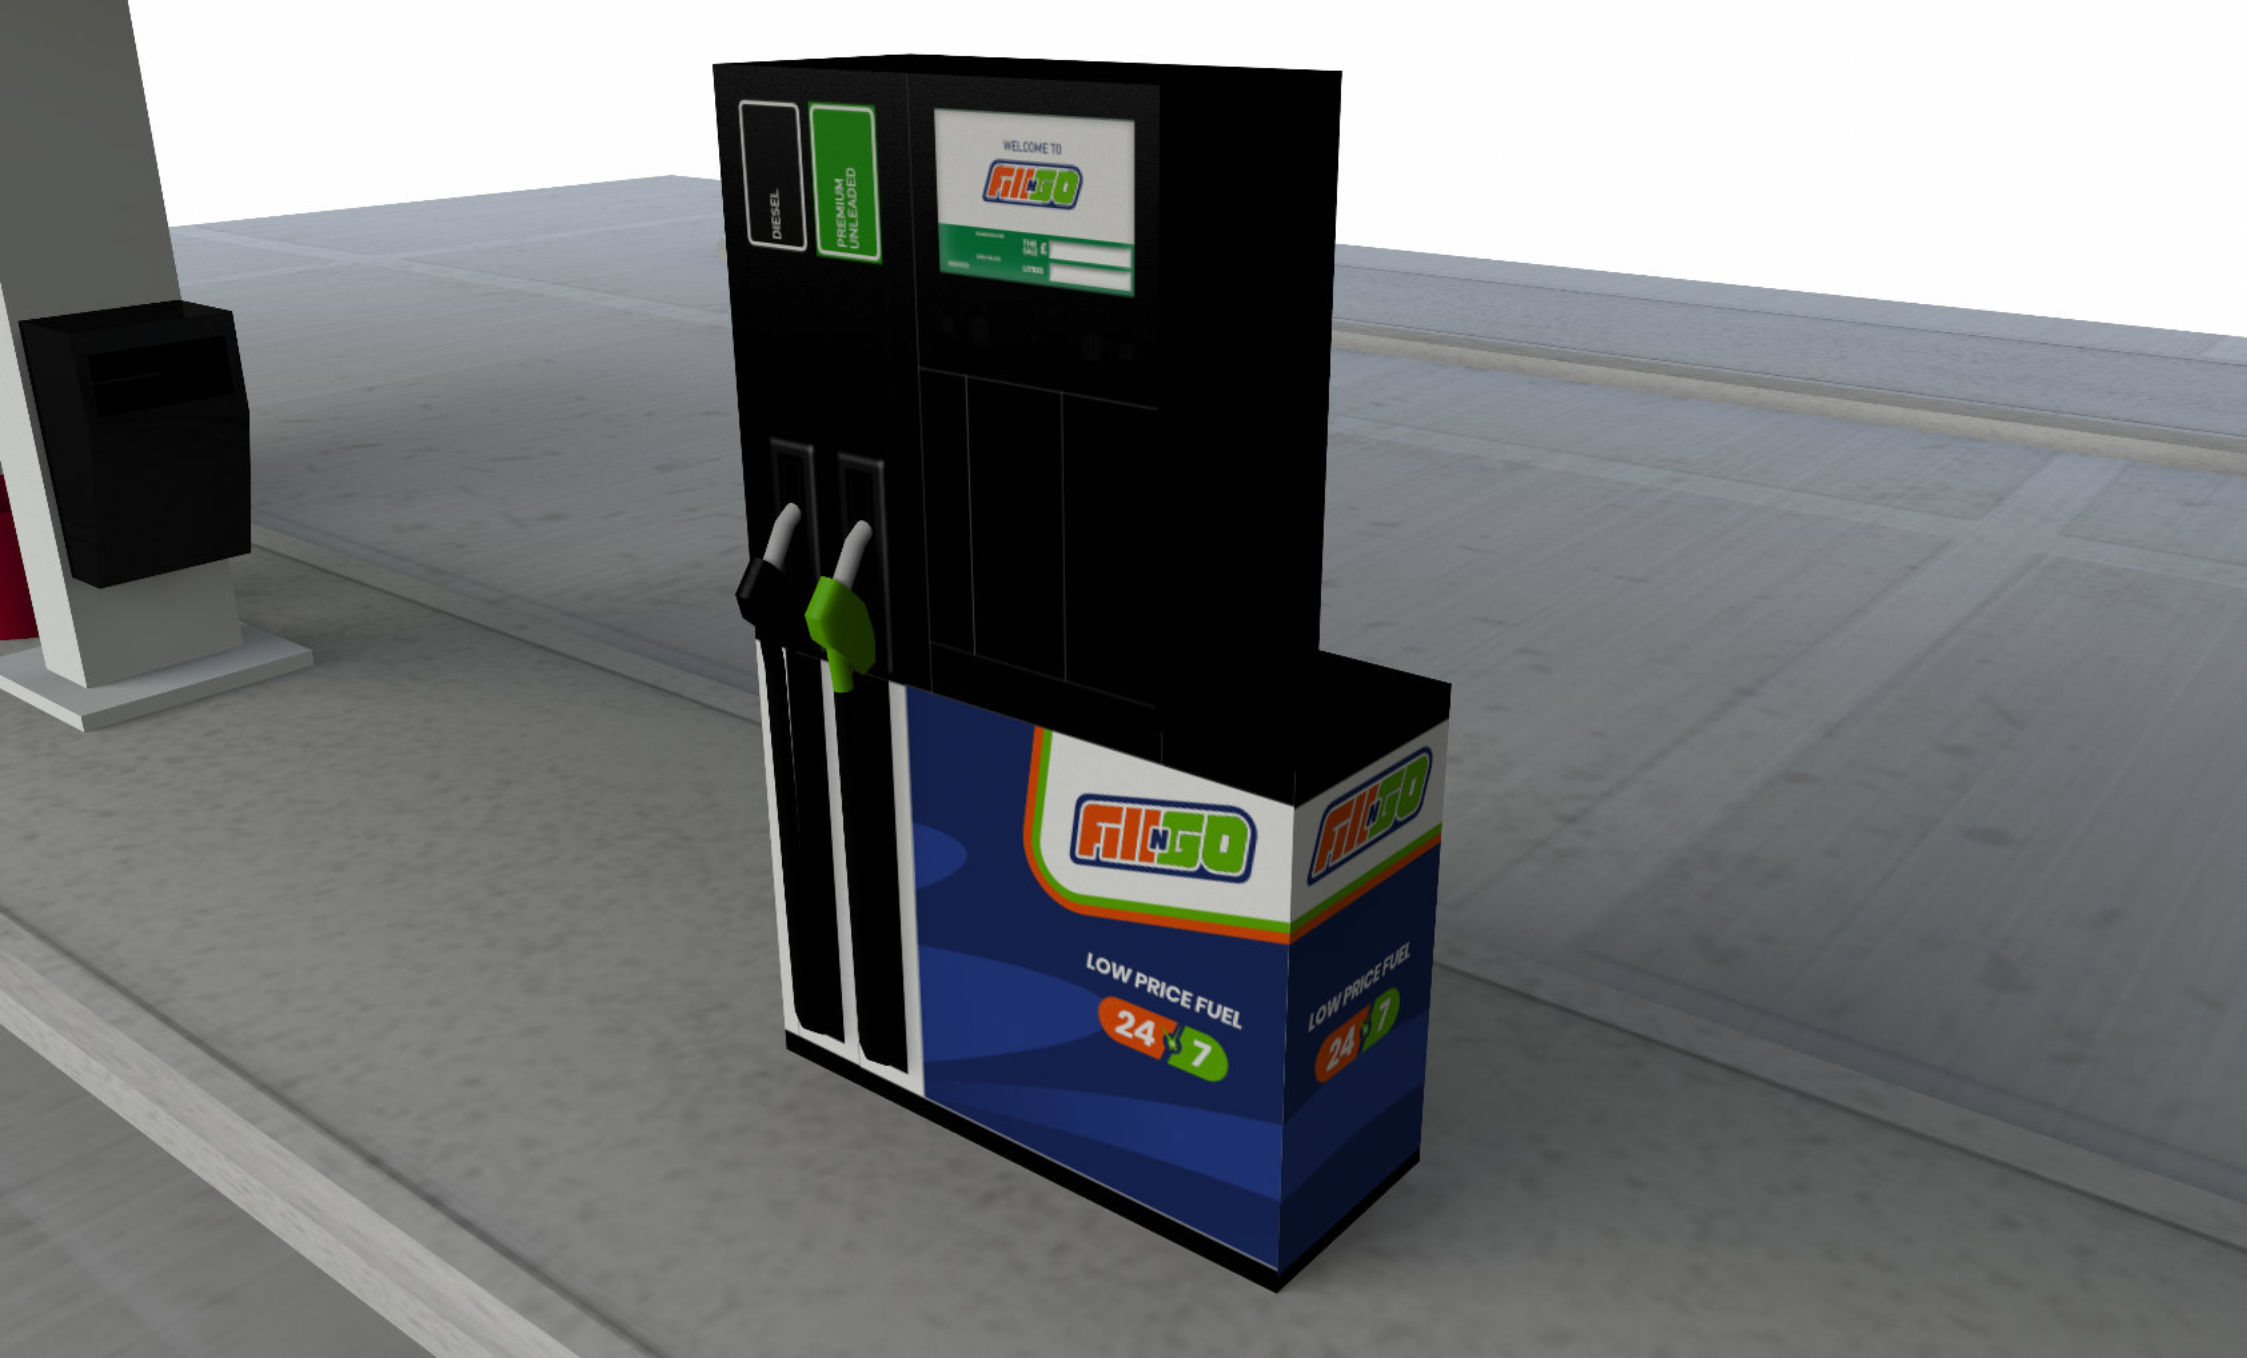 Fill N Go unmanned service station concept fuel pump